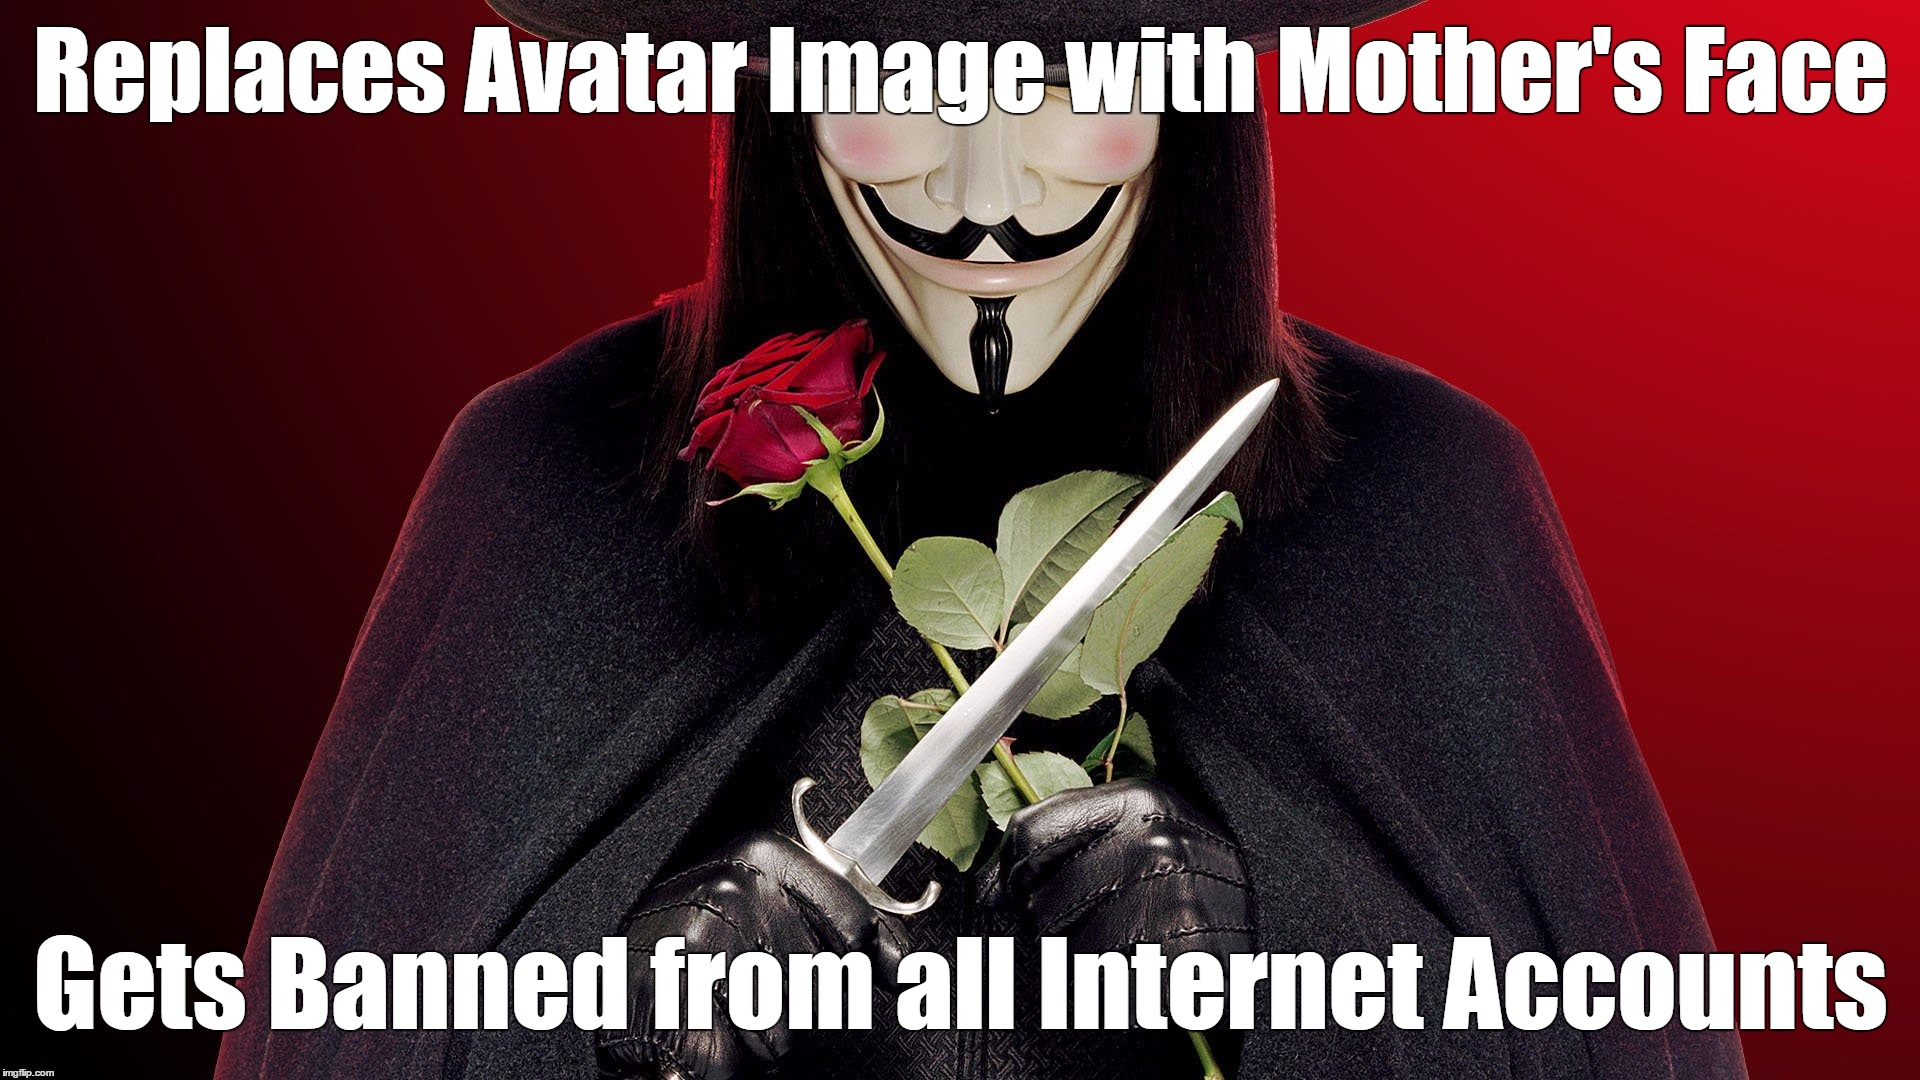 Replaces Profile Image with Mother's Face Gets Banned from all Internet Accounts | Replaces Avatar Image with Mother's Face Gets Banned from all Internet Accounts | image tagged in avatar,mother,banned,account,v,vendetta | made w/ Imgflip meme maker